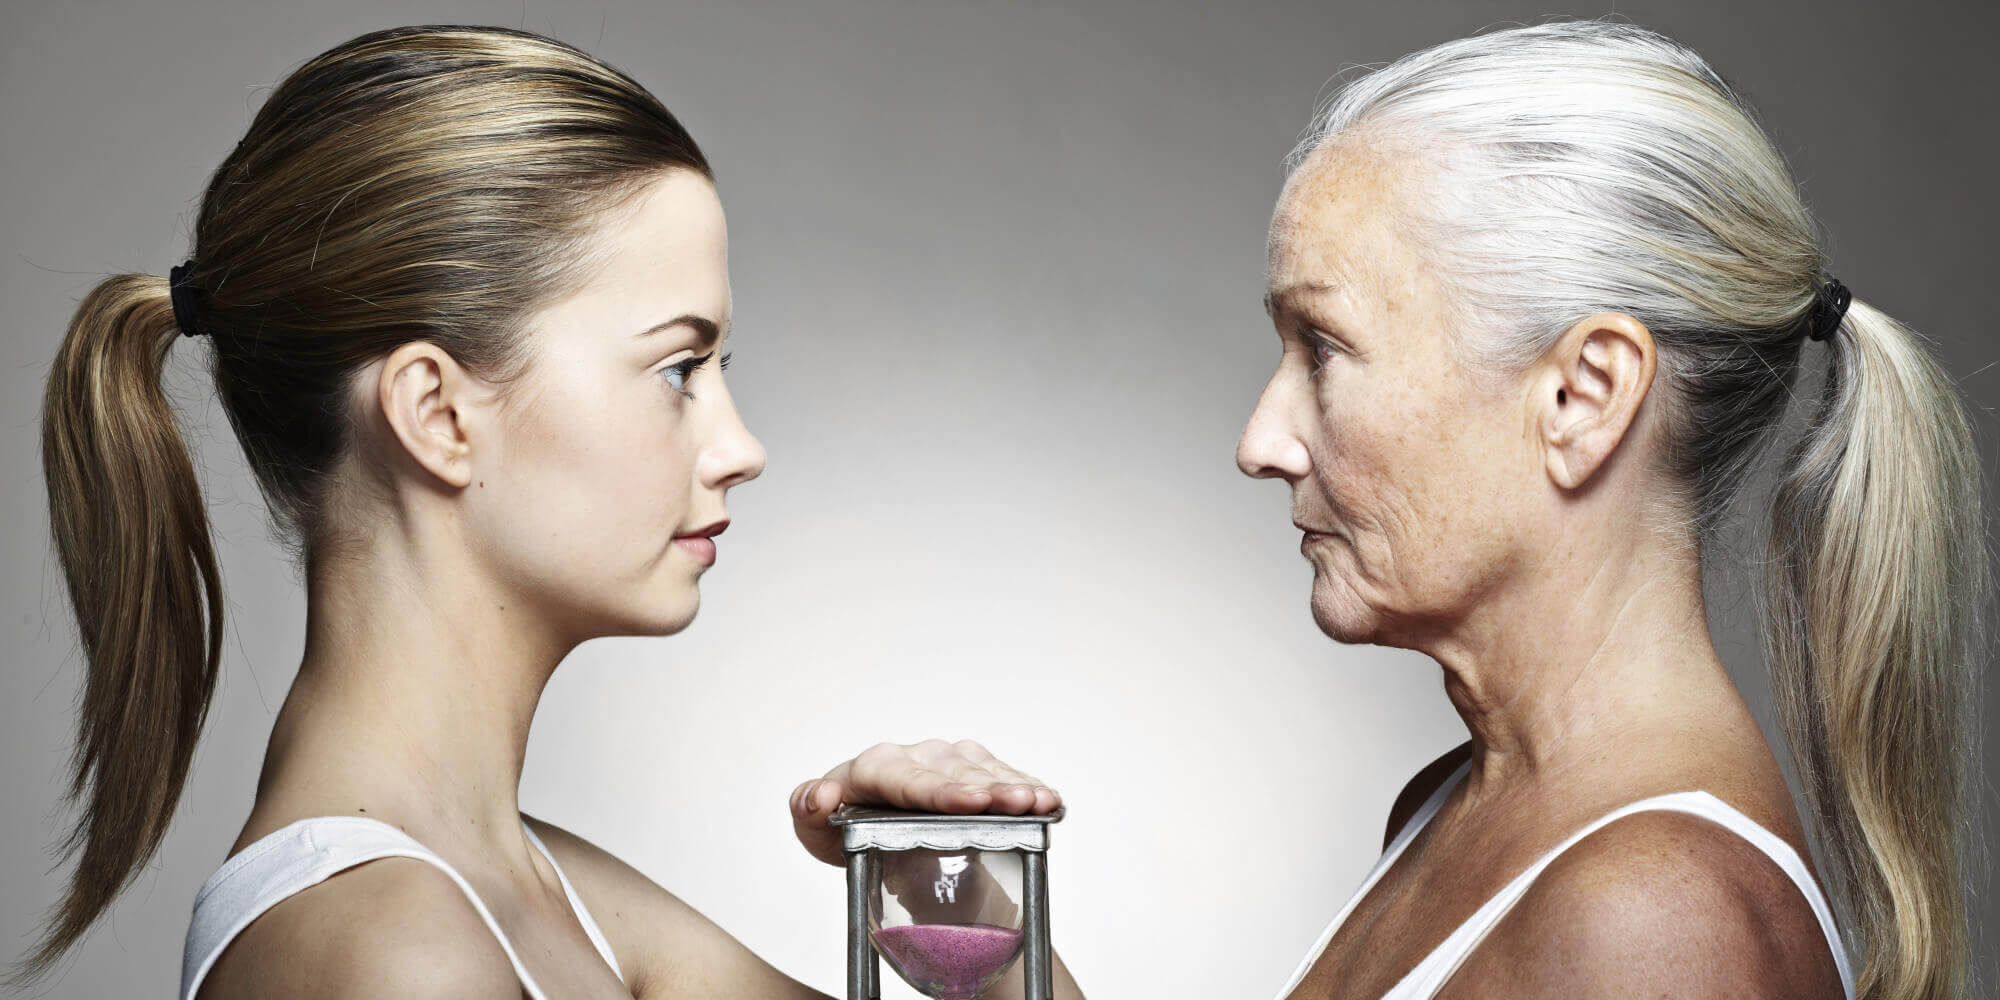 Excess Phosphate Could Cause Premature Aging In CKD Patients